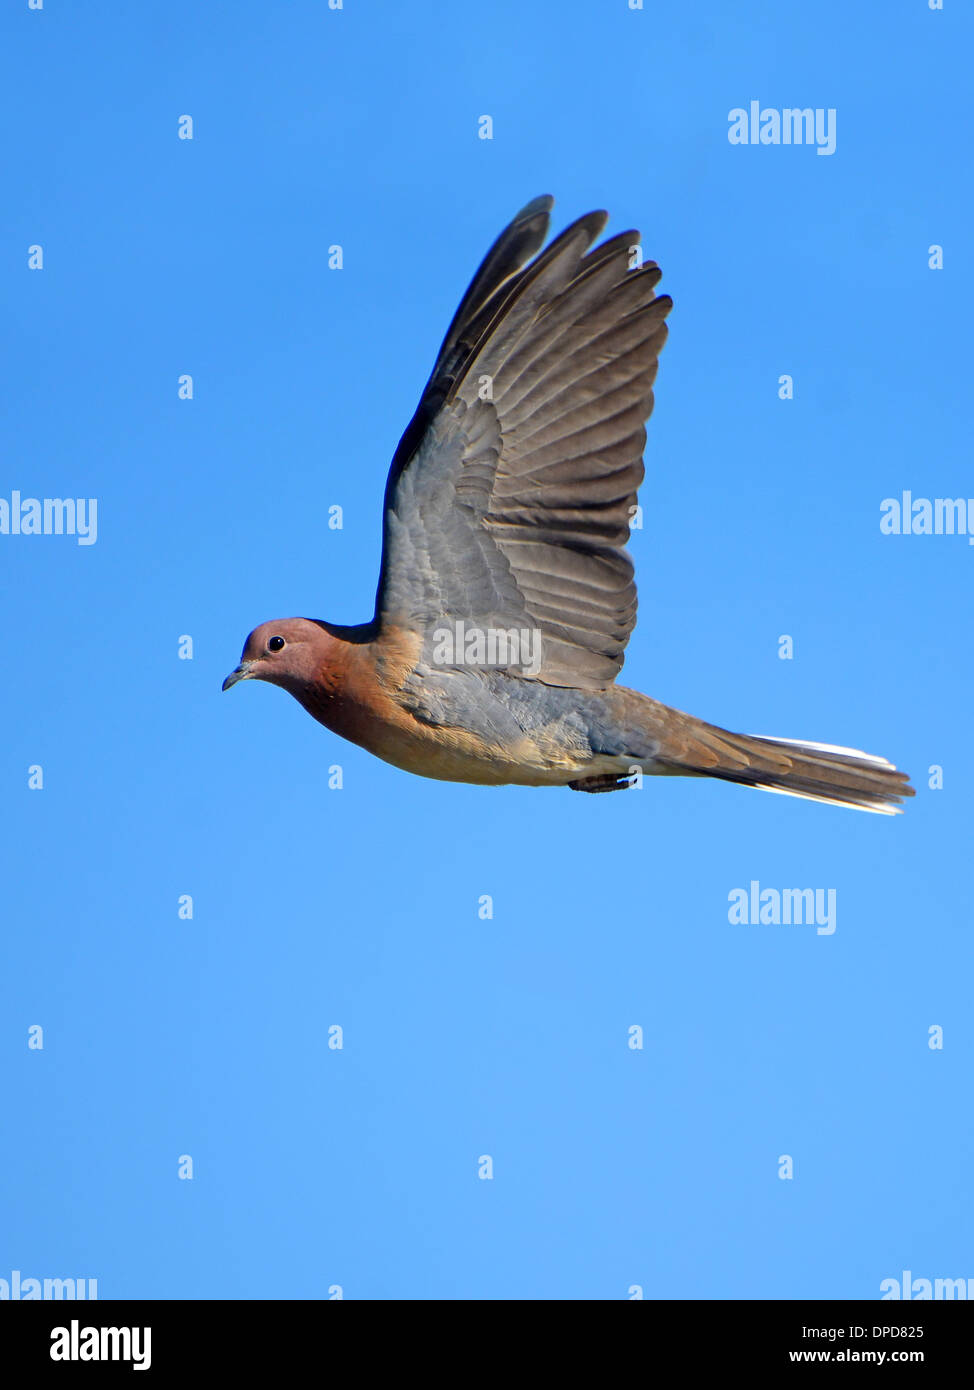 Laughing Dove flying Photo Stock